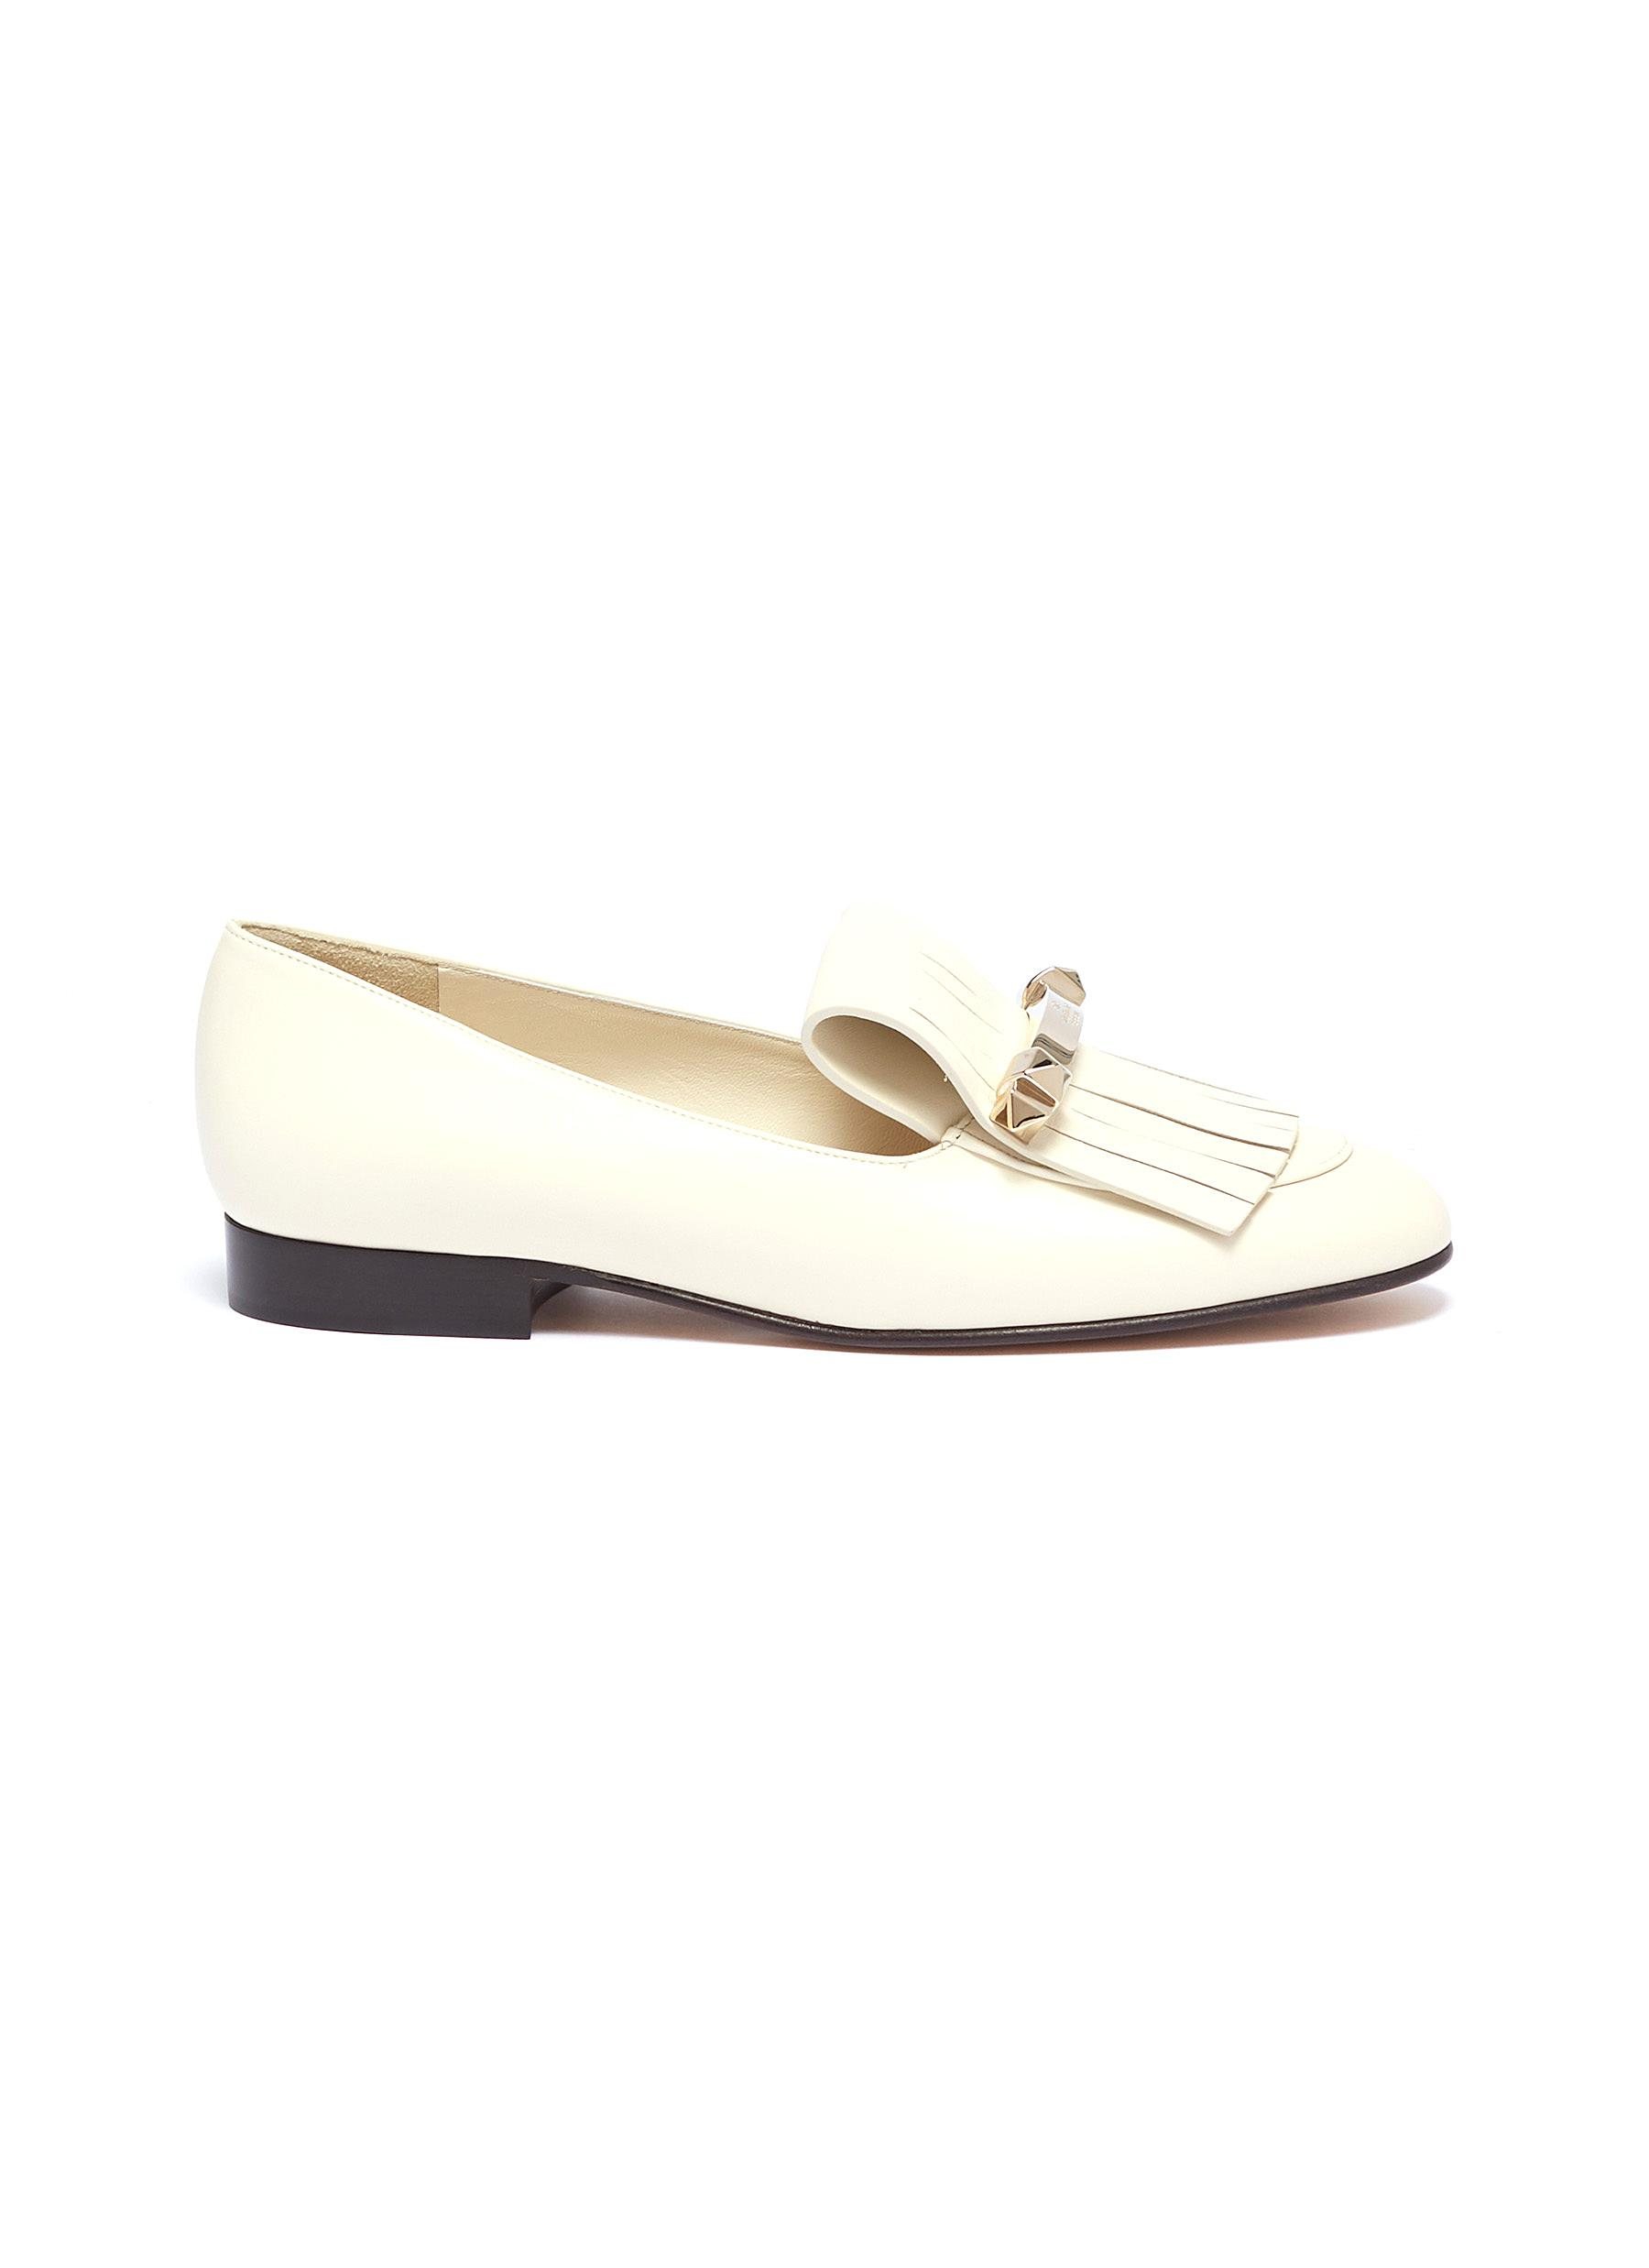 68fb165c789 Main View - Click To Enlarge - Valentino -  Uptown  fringe leather loafers